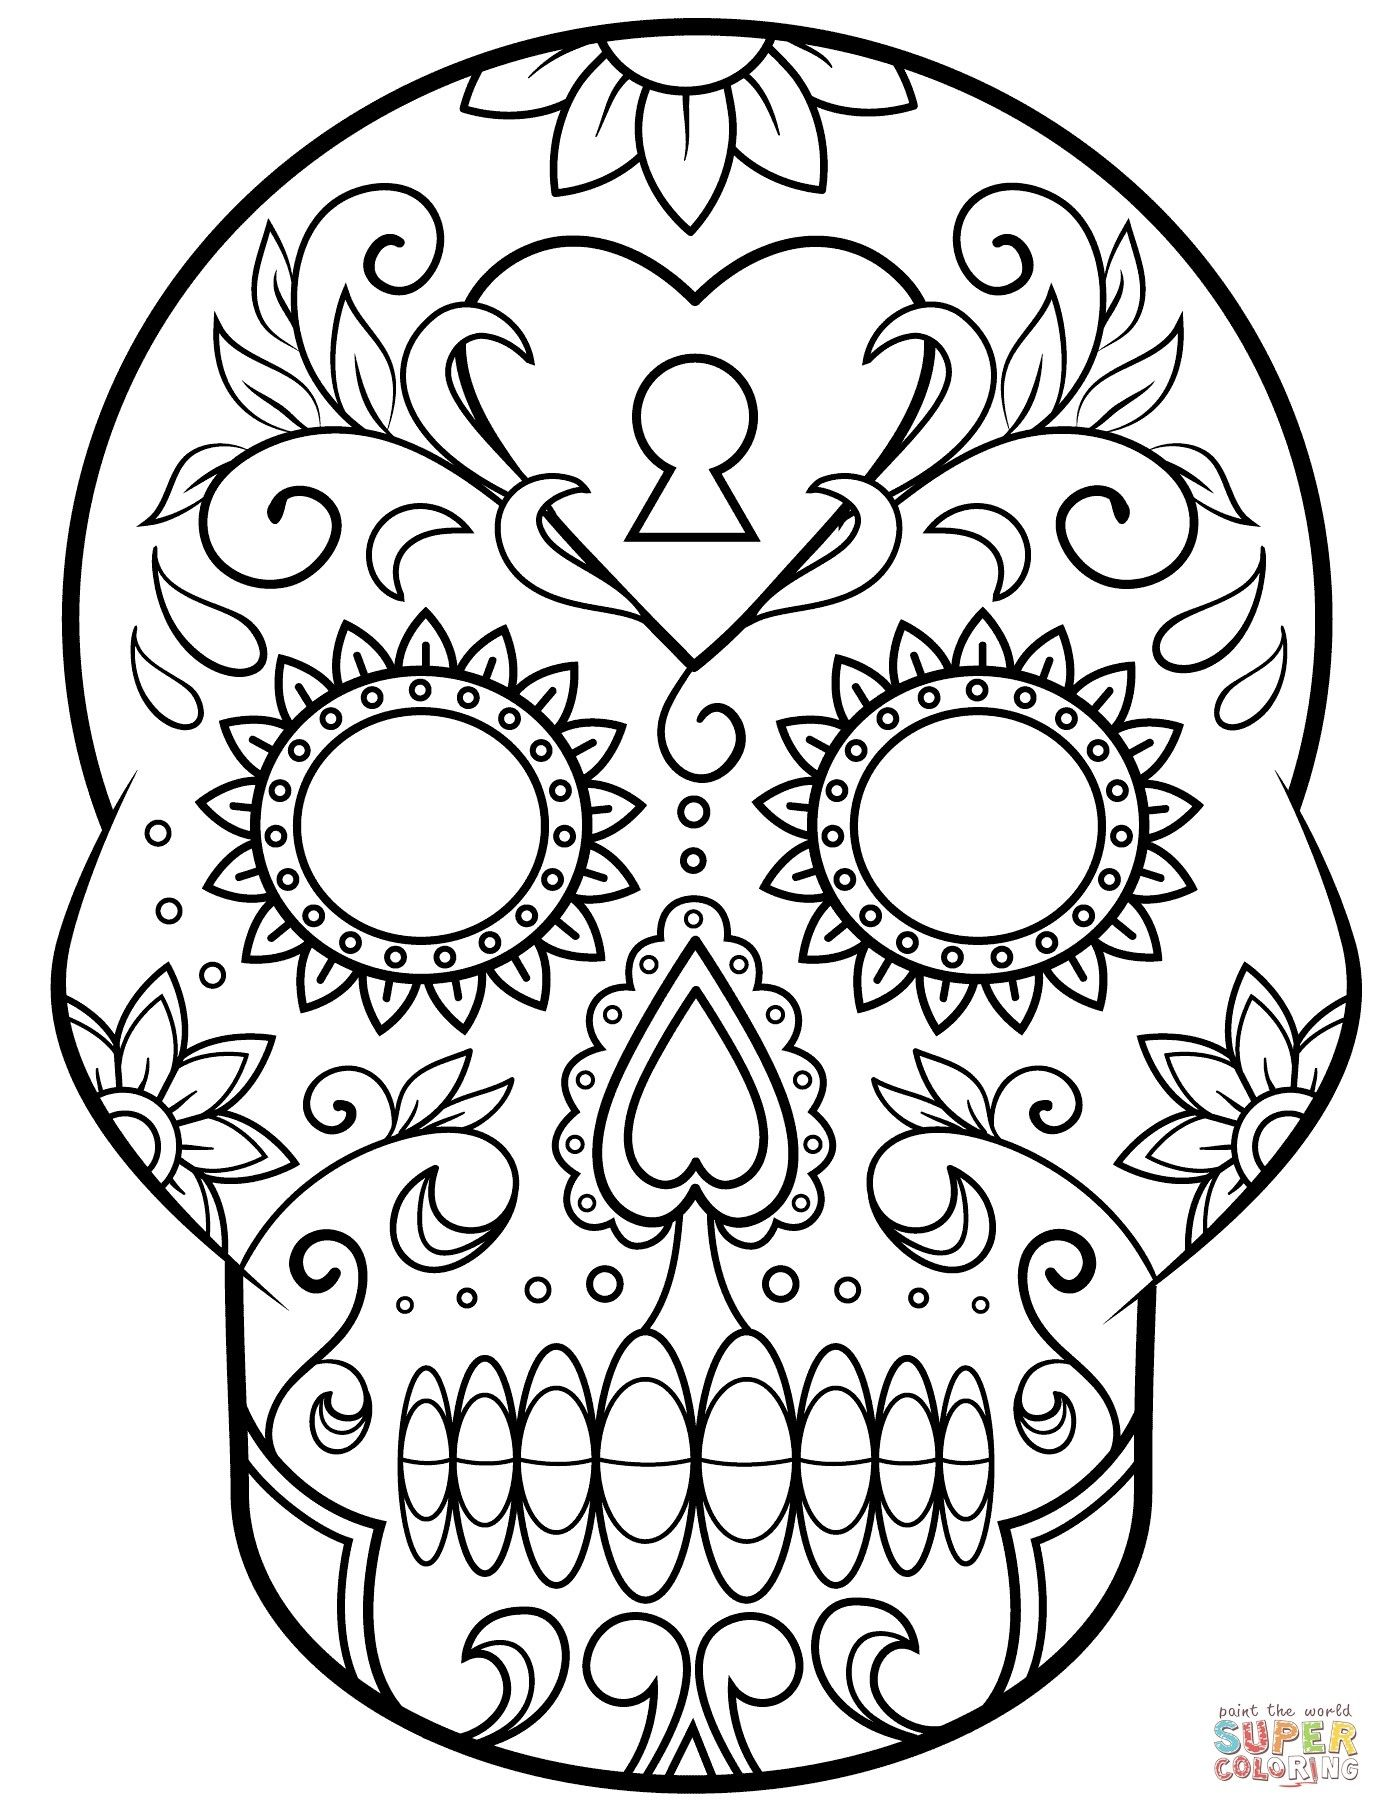 Best Of Skull Coloring Pages To Print Wallpapers Of Simple Sugar Skull Coloring Pages Collecti Skull Coloring Pages Halloween Coloring Pages Halloween Coloring